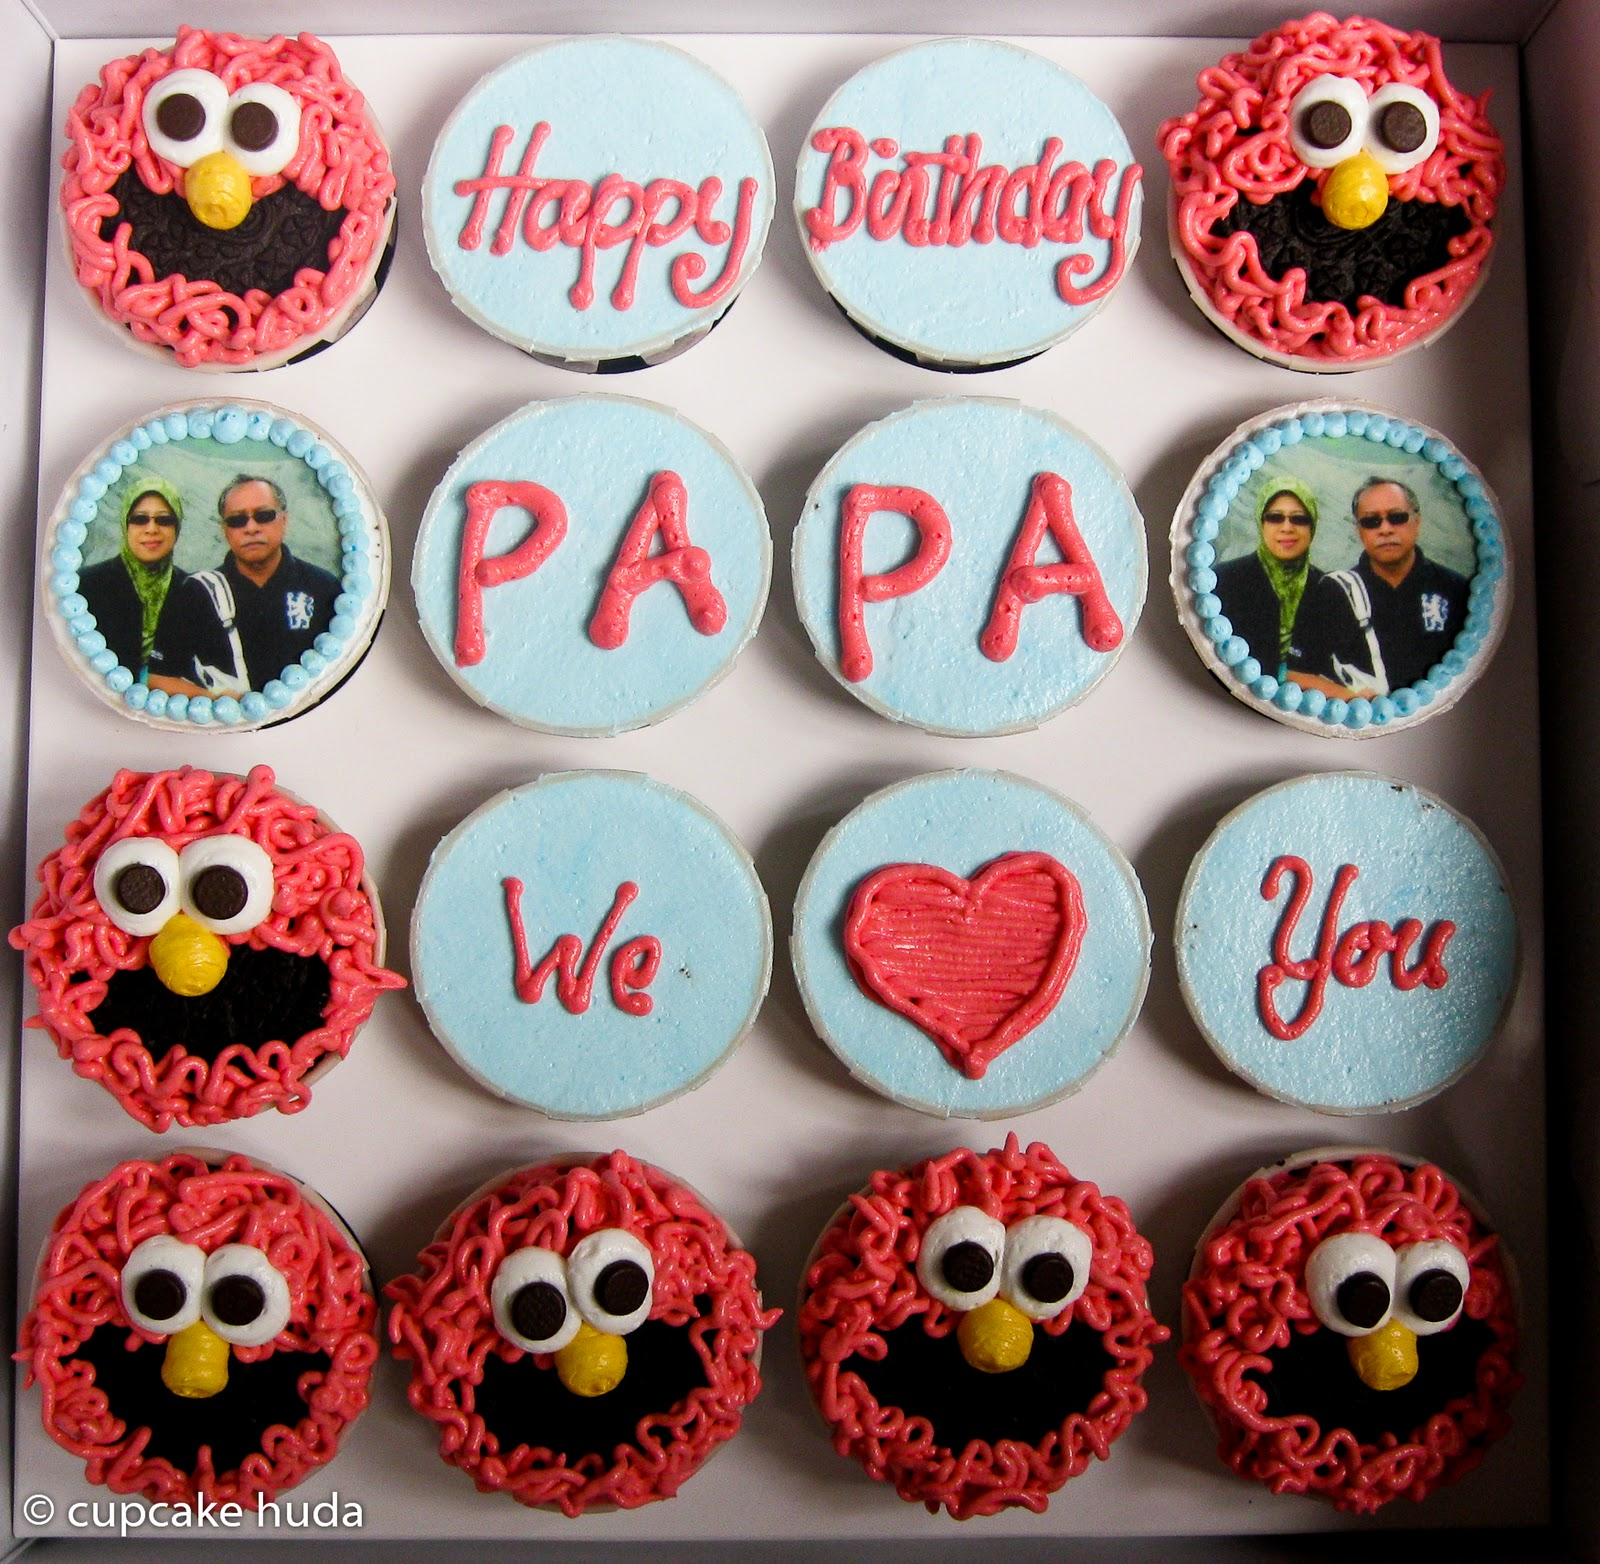 Happy Birthday Papa Haida cupcake huda